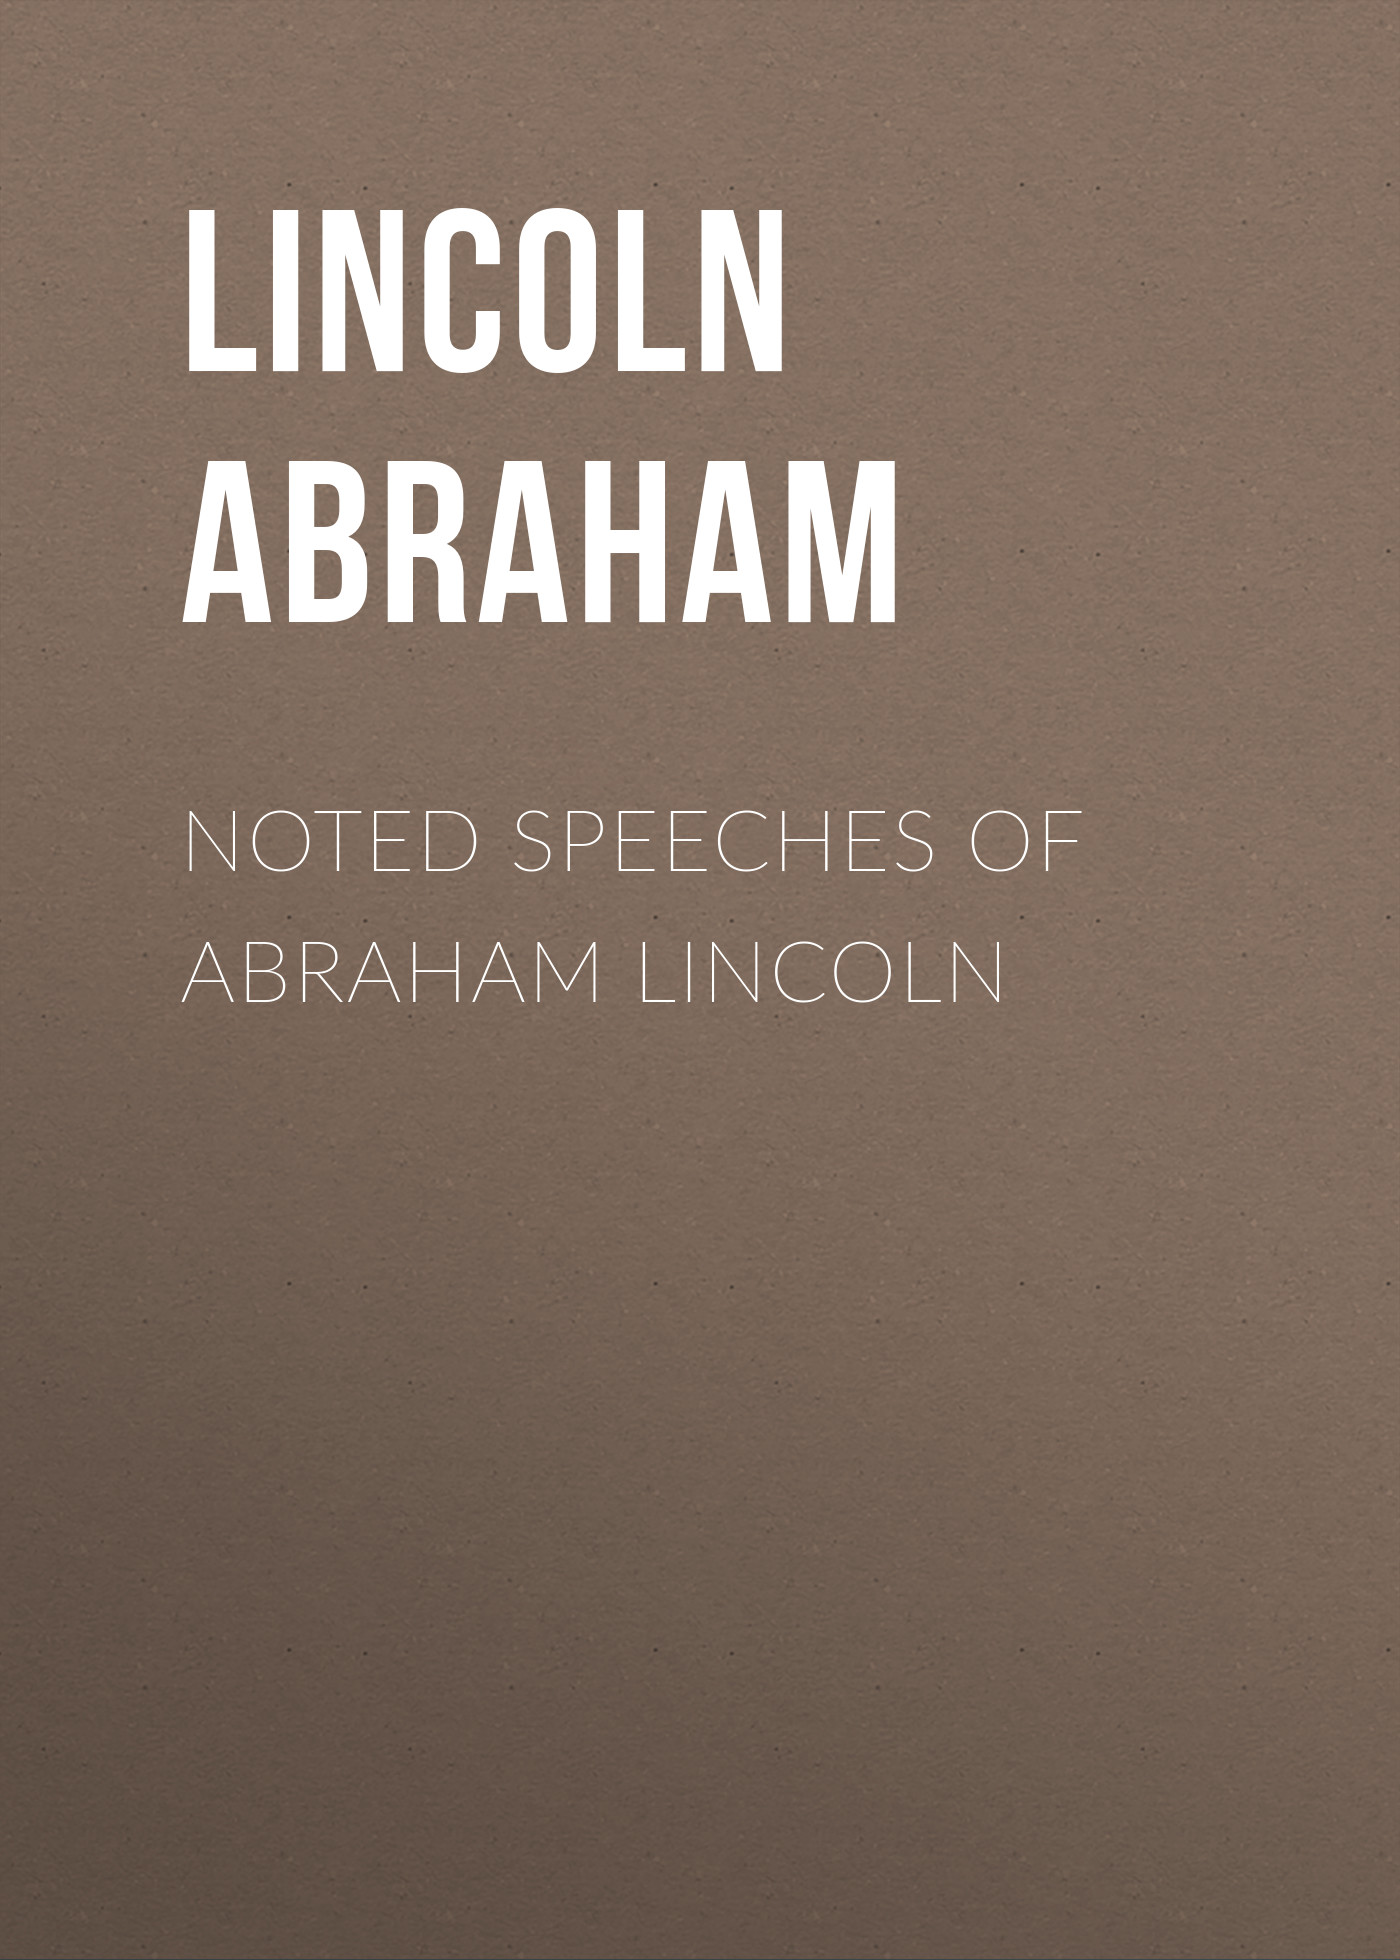 Lincoln Abraham Noted Speeches of Abraham Lincoln grahame smith s abraham lincoln vampire hunter